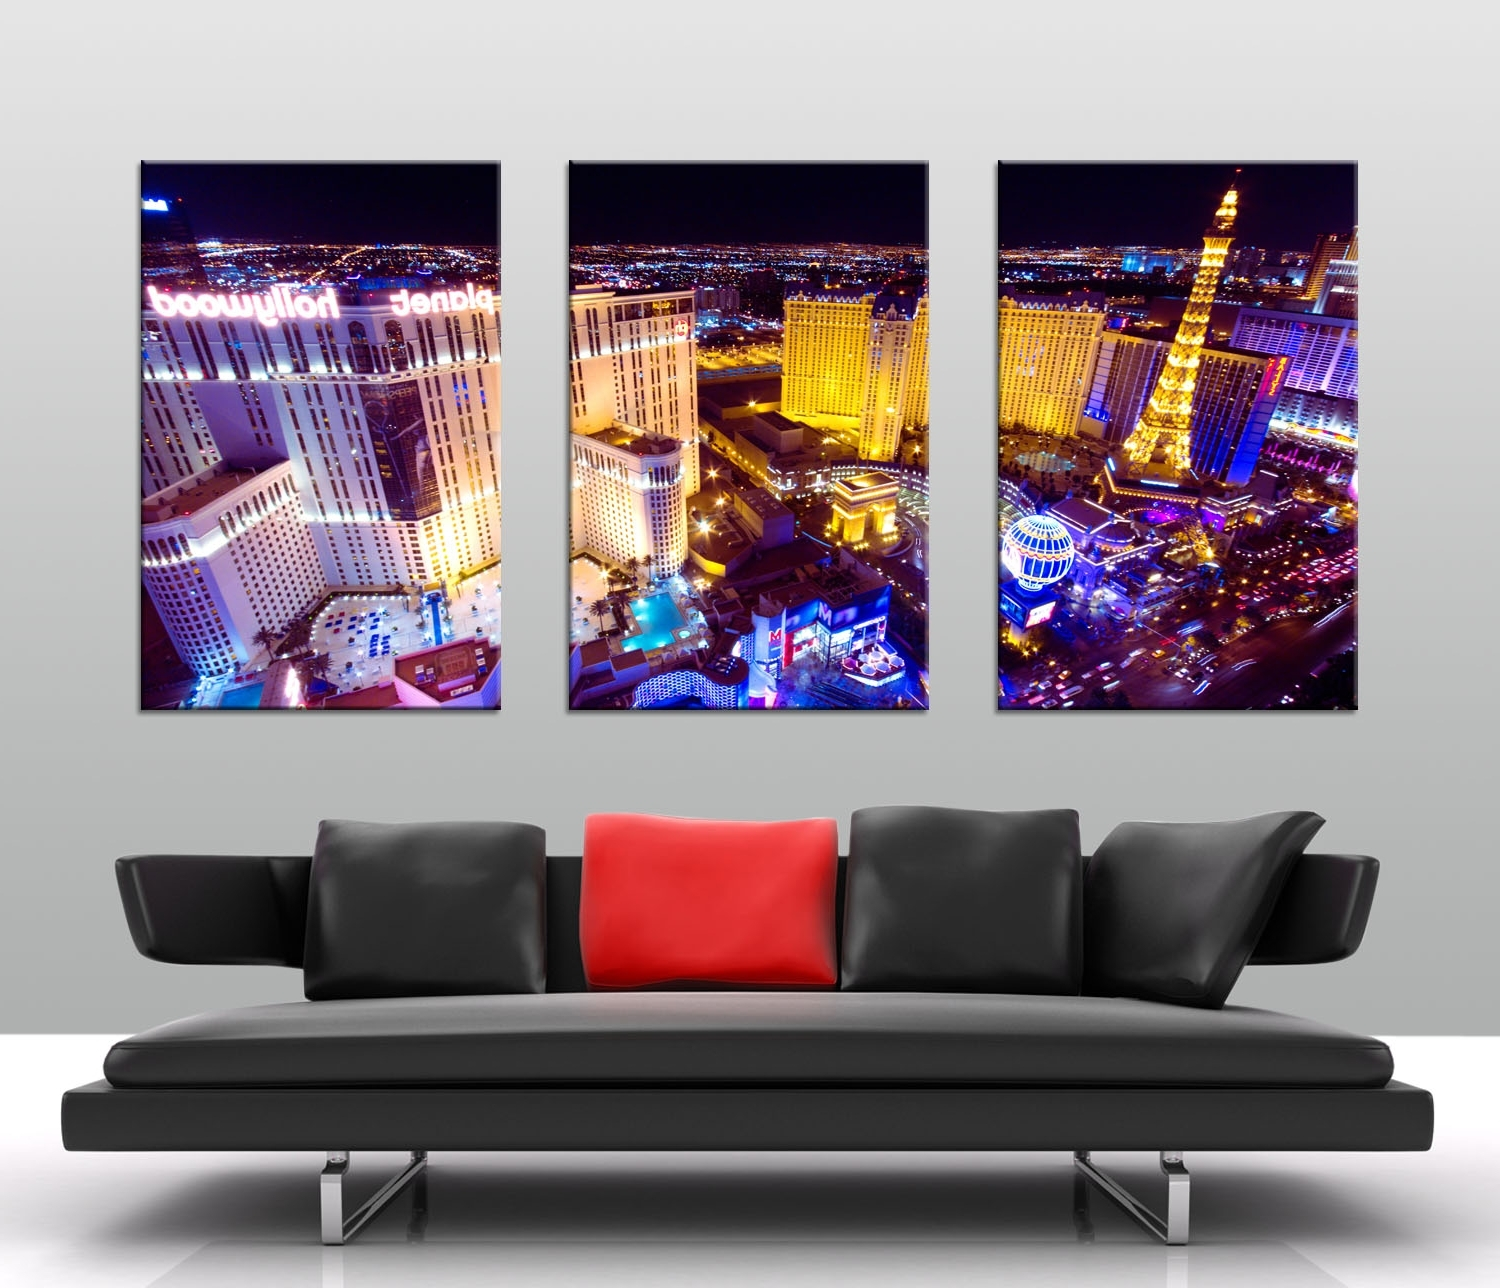 Las Vegas At Night Triptych Art – Canvas Prints Australia Intended For Best And Newest Canvas Wall Art In Australia (View 10 of 15)